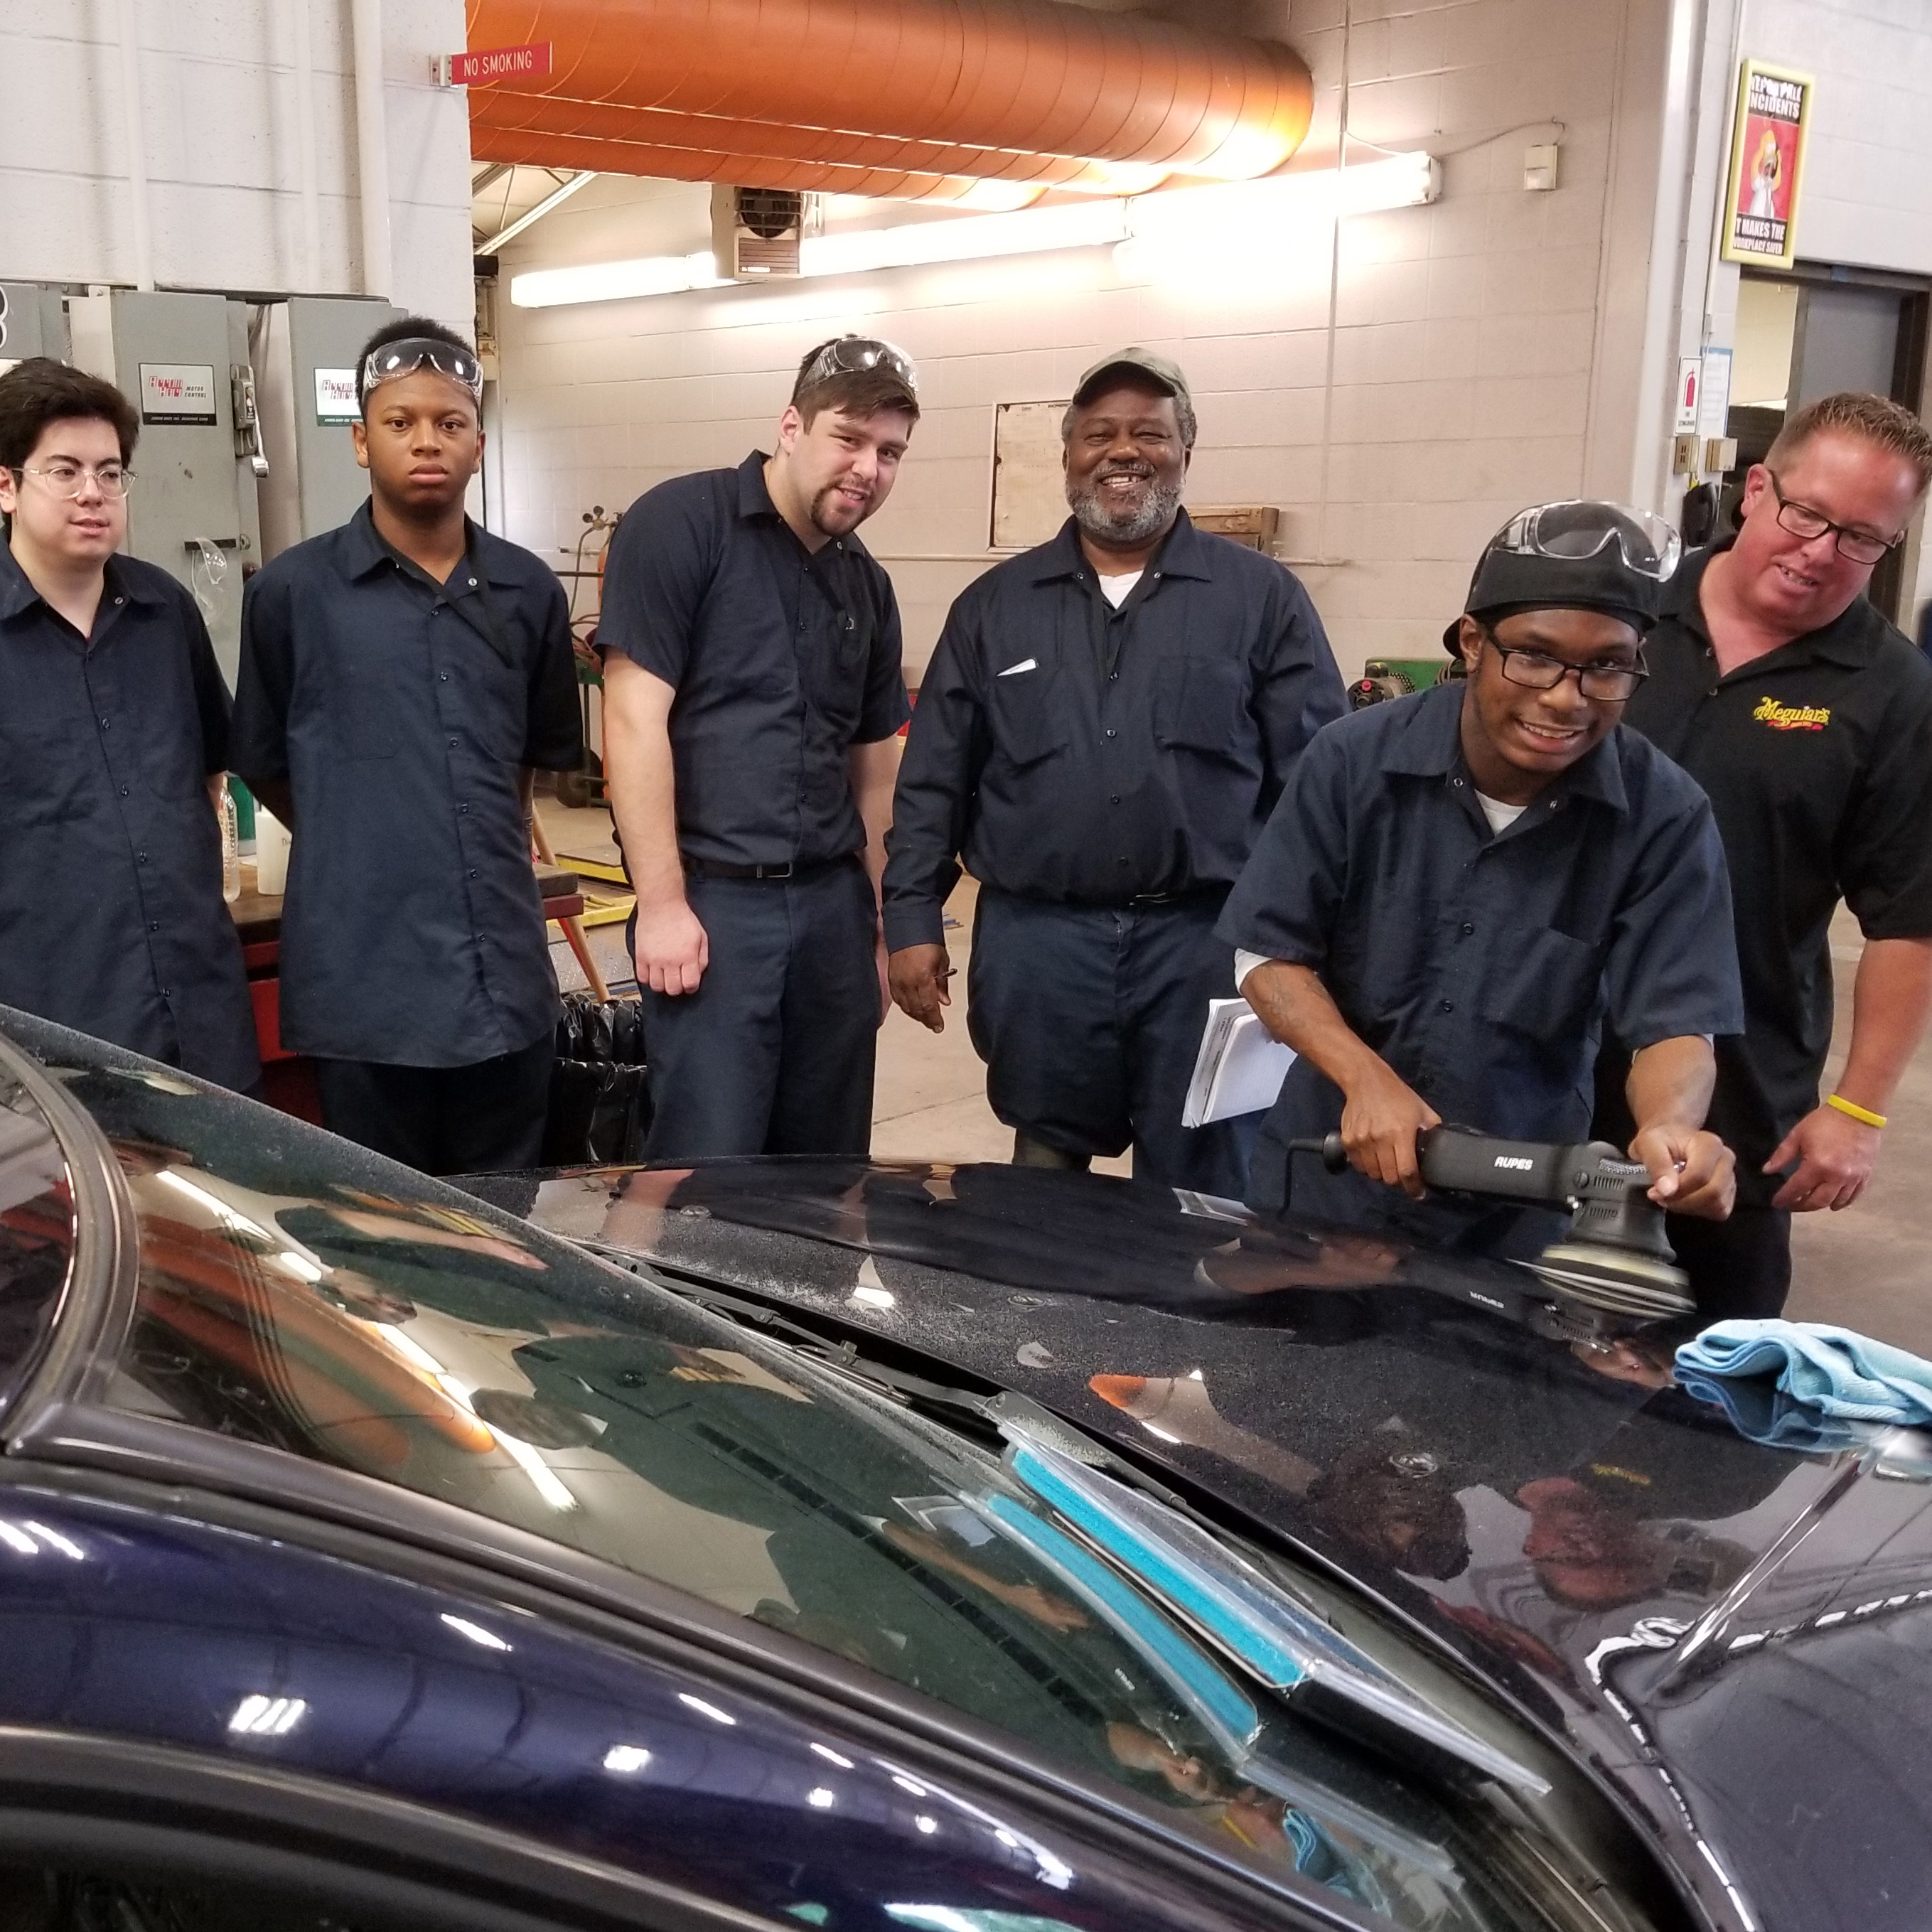 Four Automotive Detailing students watch as one student learns to buff a car hood, as shown by a Mequiars' Car Care expert.